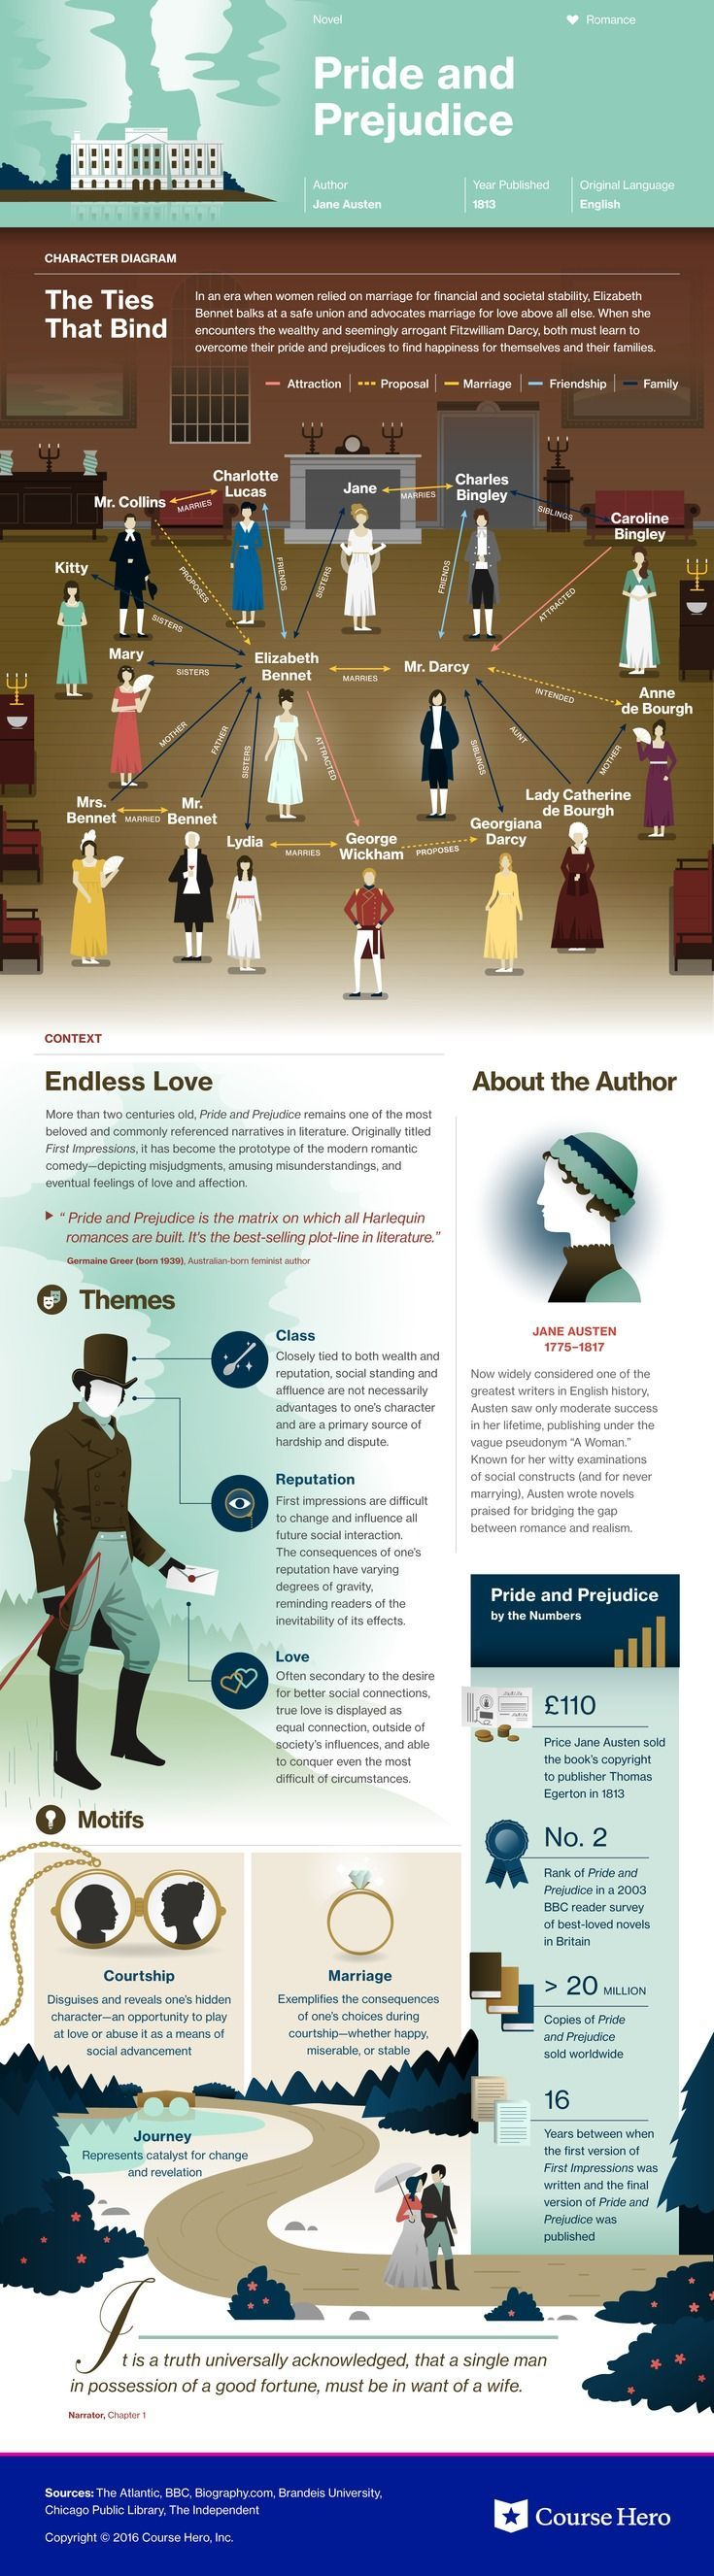 This @CourseHero infographic on Pride and Prejudice is both visually stunning and informative!